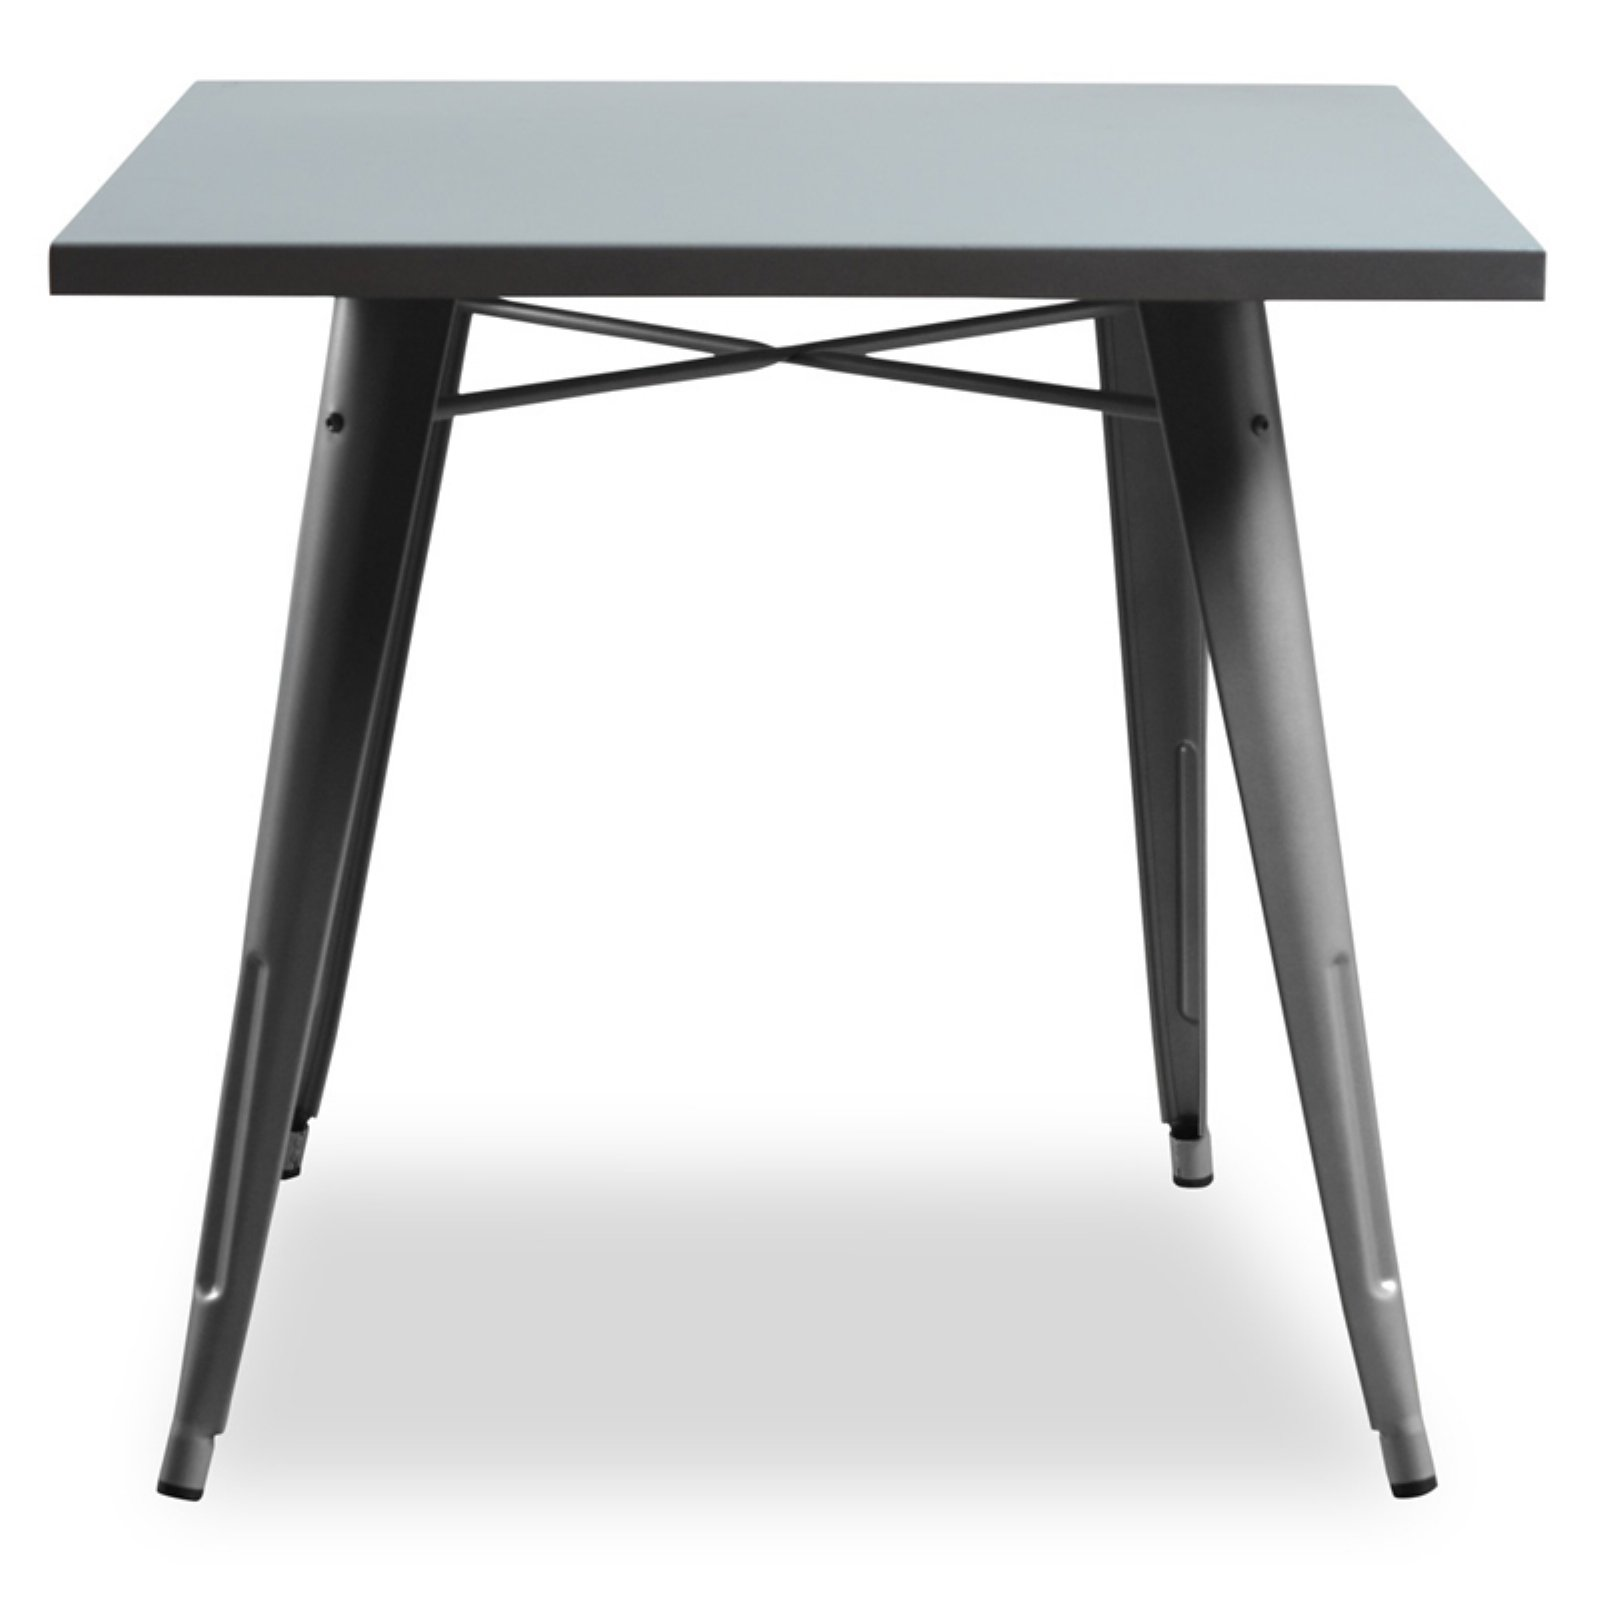 Aeon Furniture Garvin Dining Table